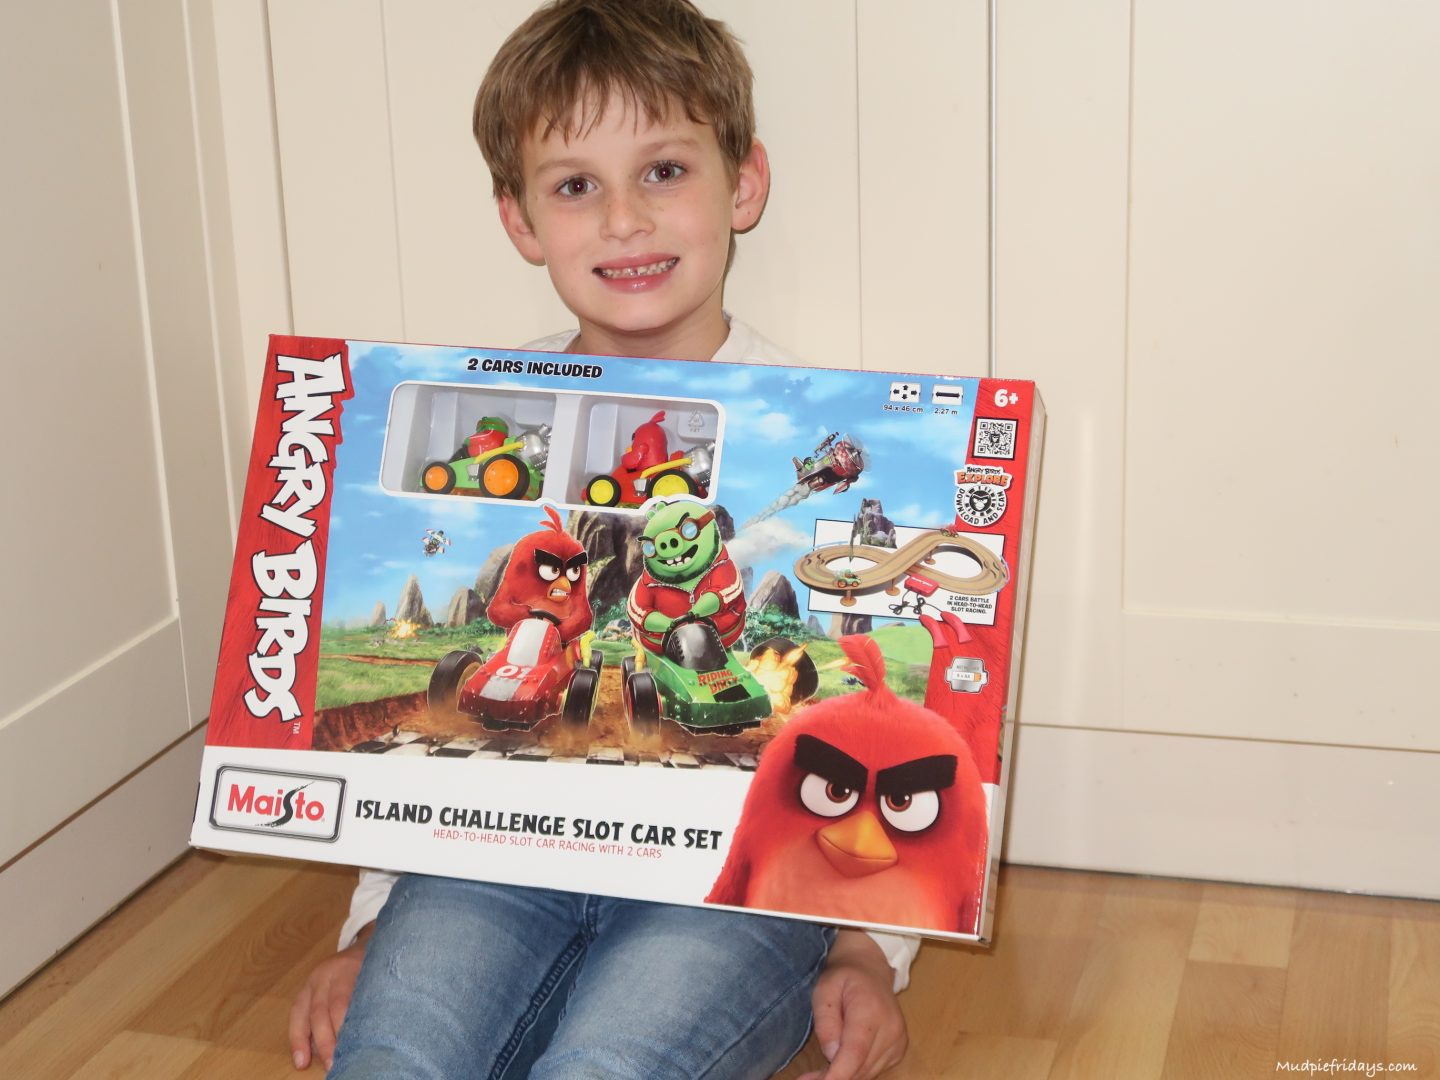 Review The Angry Birds Island Challenge Slot Car Set